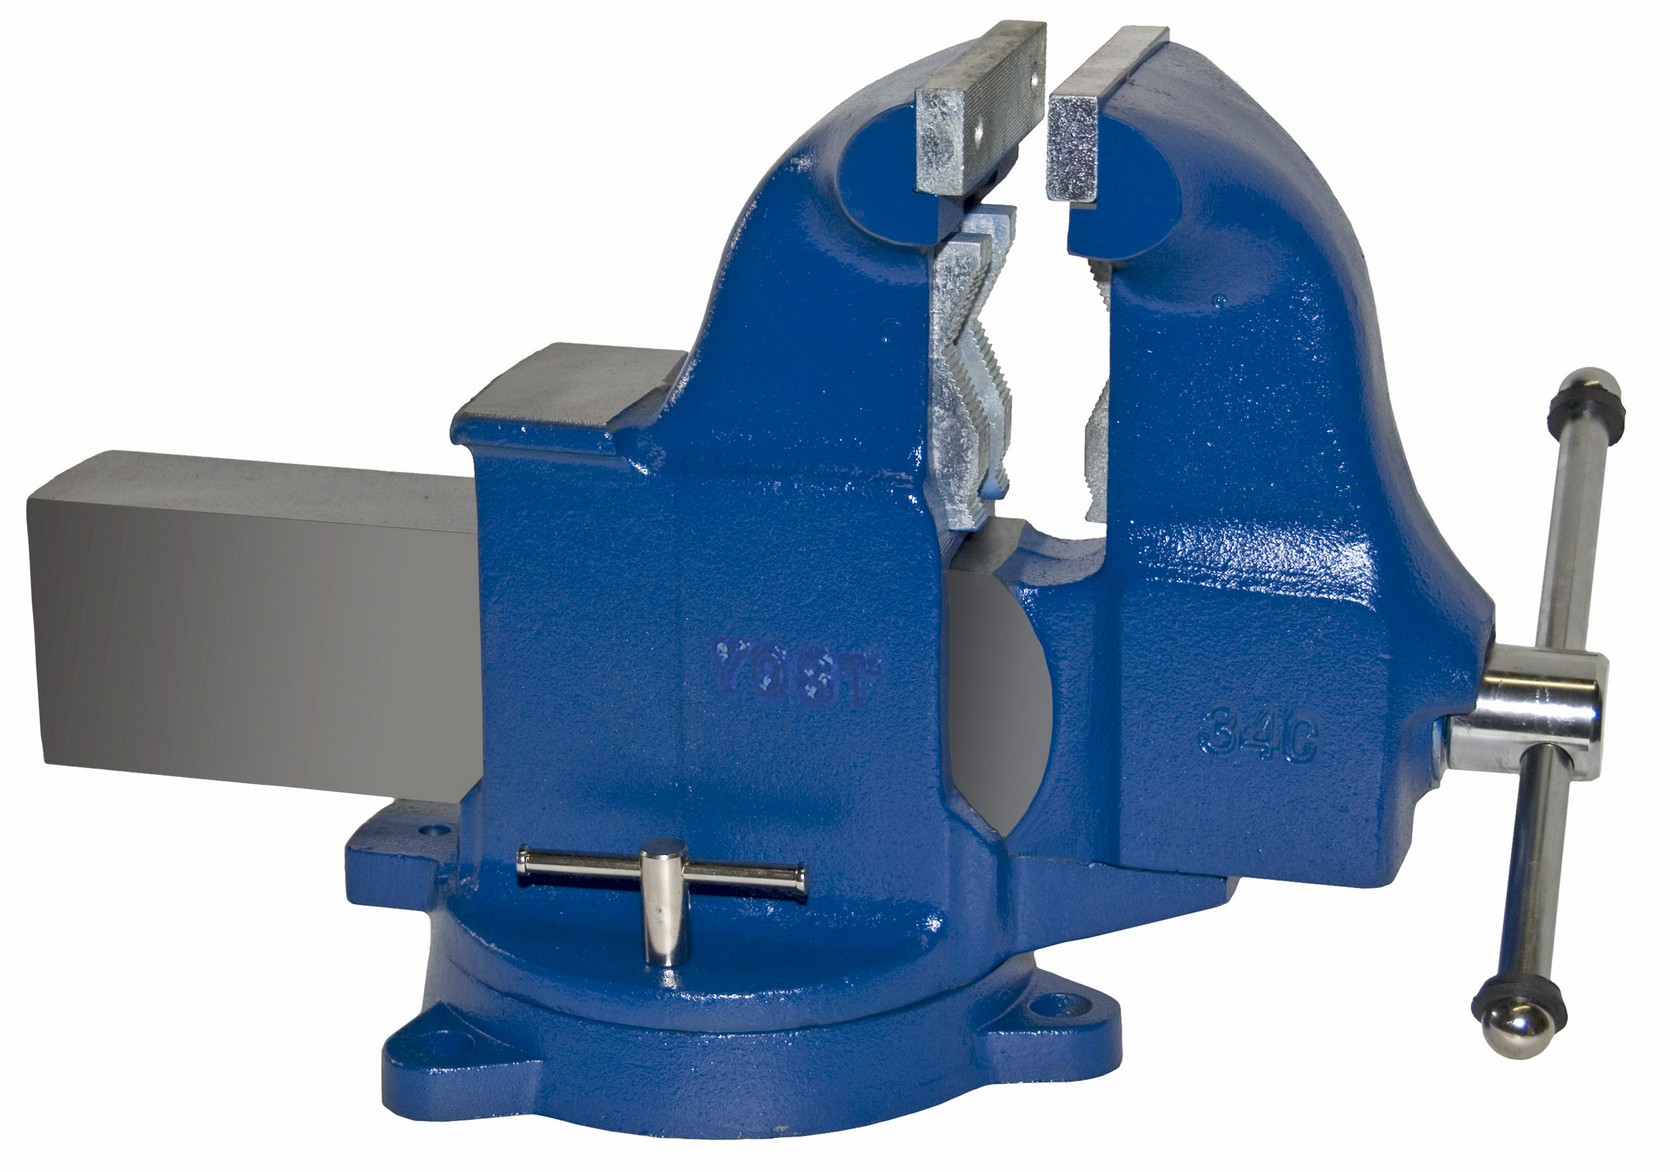 Yost Vises 34c 6 Heavy Duty Combination Pipe Bench Vise Swivel Base